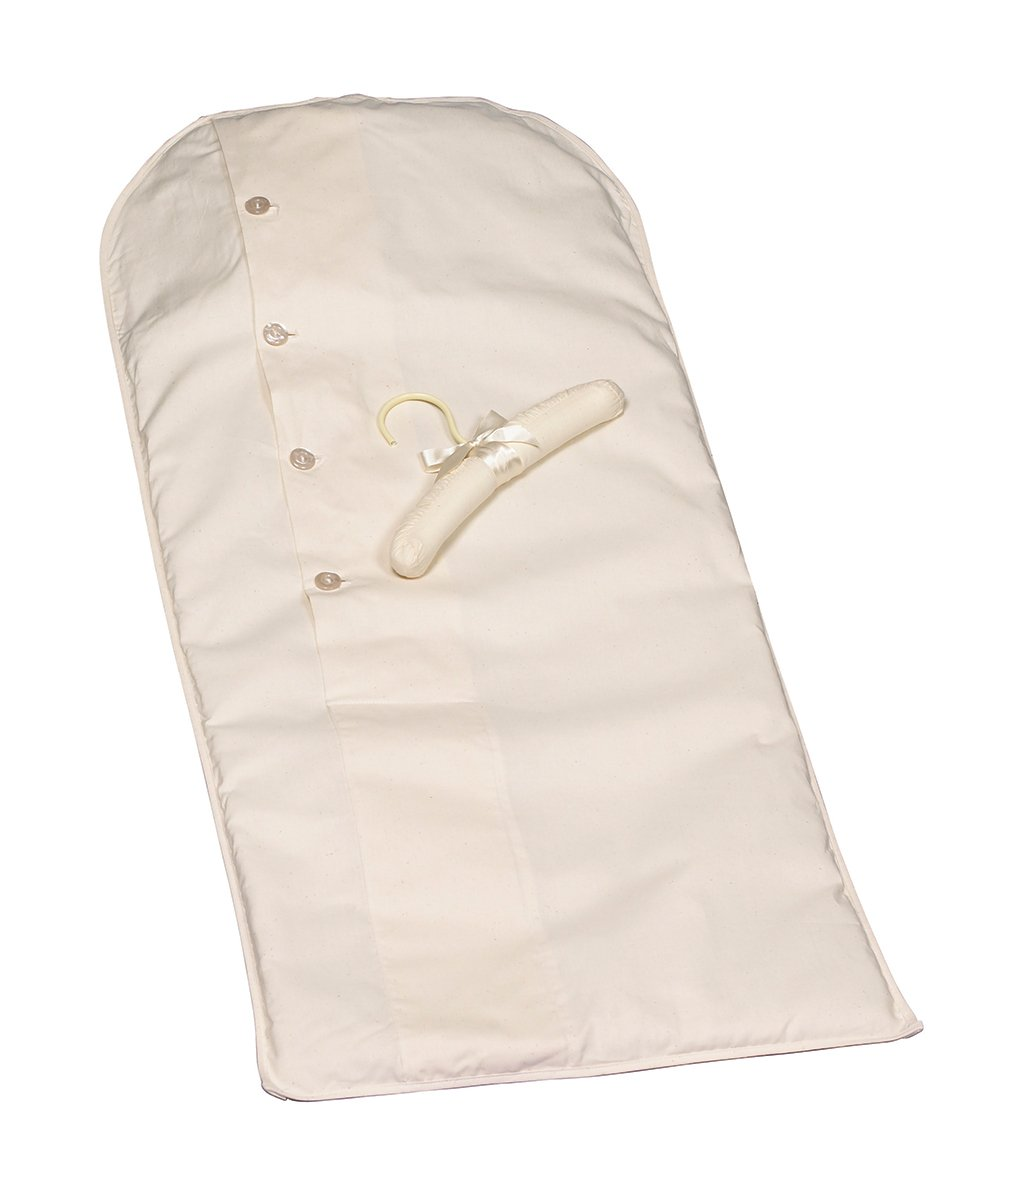 Acid-free Christening or Child size Muslin Garment Bag 38